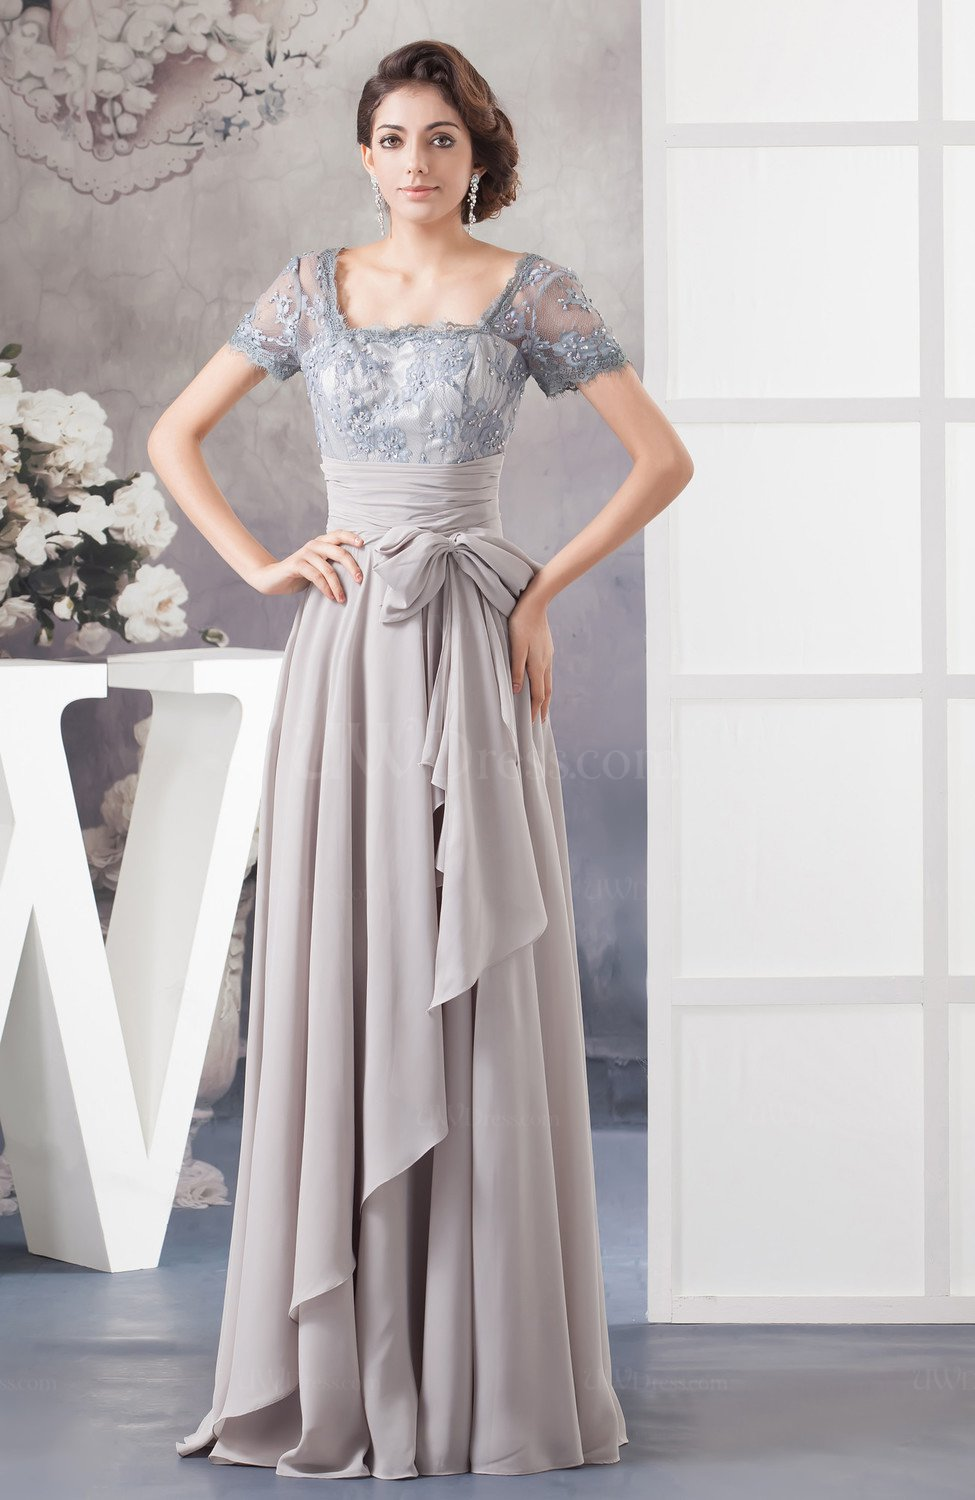 Chic Evening Dresses lace evening dress with sleeves classy chic amazing glamorous fall simple QUTXLUO